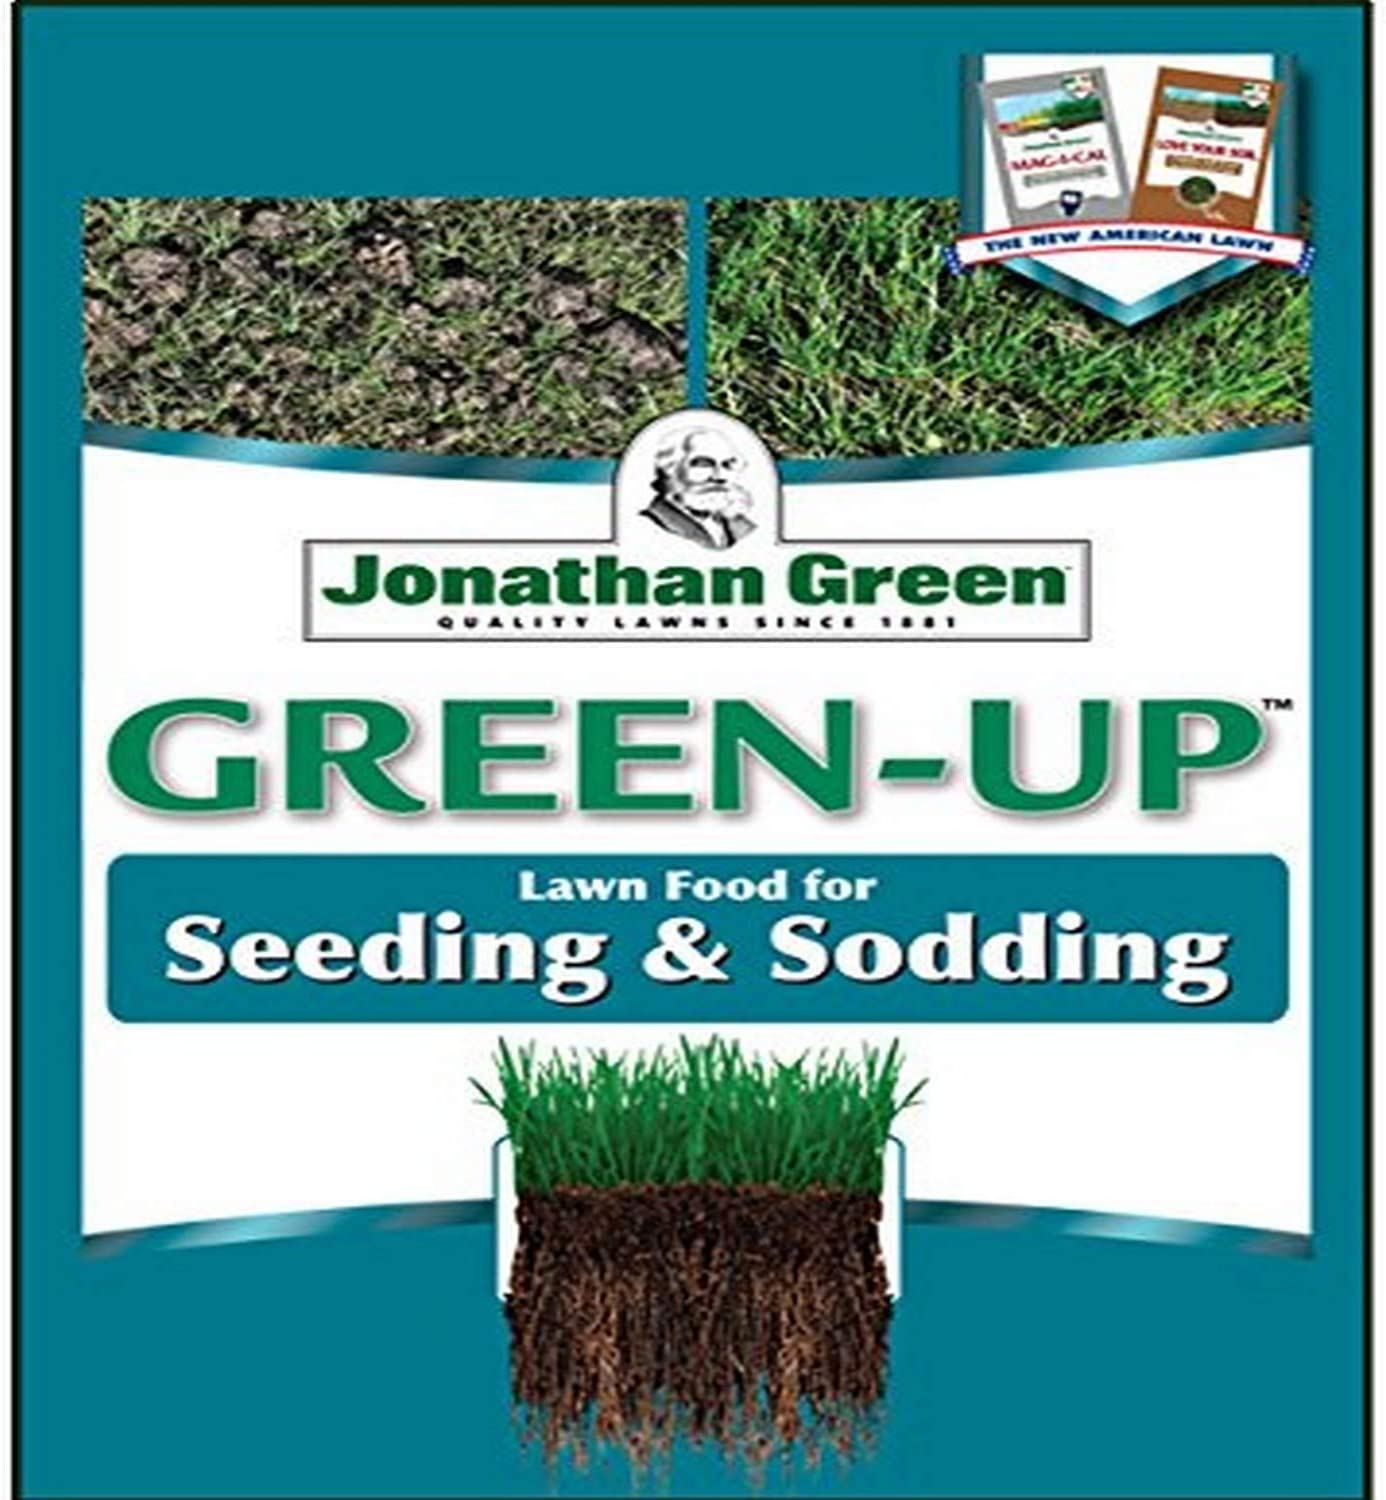 Jonathan Green & Sons, 11543 Green Up 12-18-8, Seeding & Sodding Lawn Fertilizer, 15000 sq. ft.